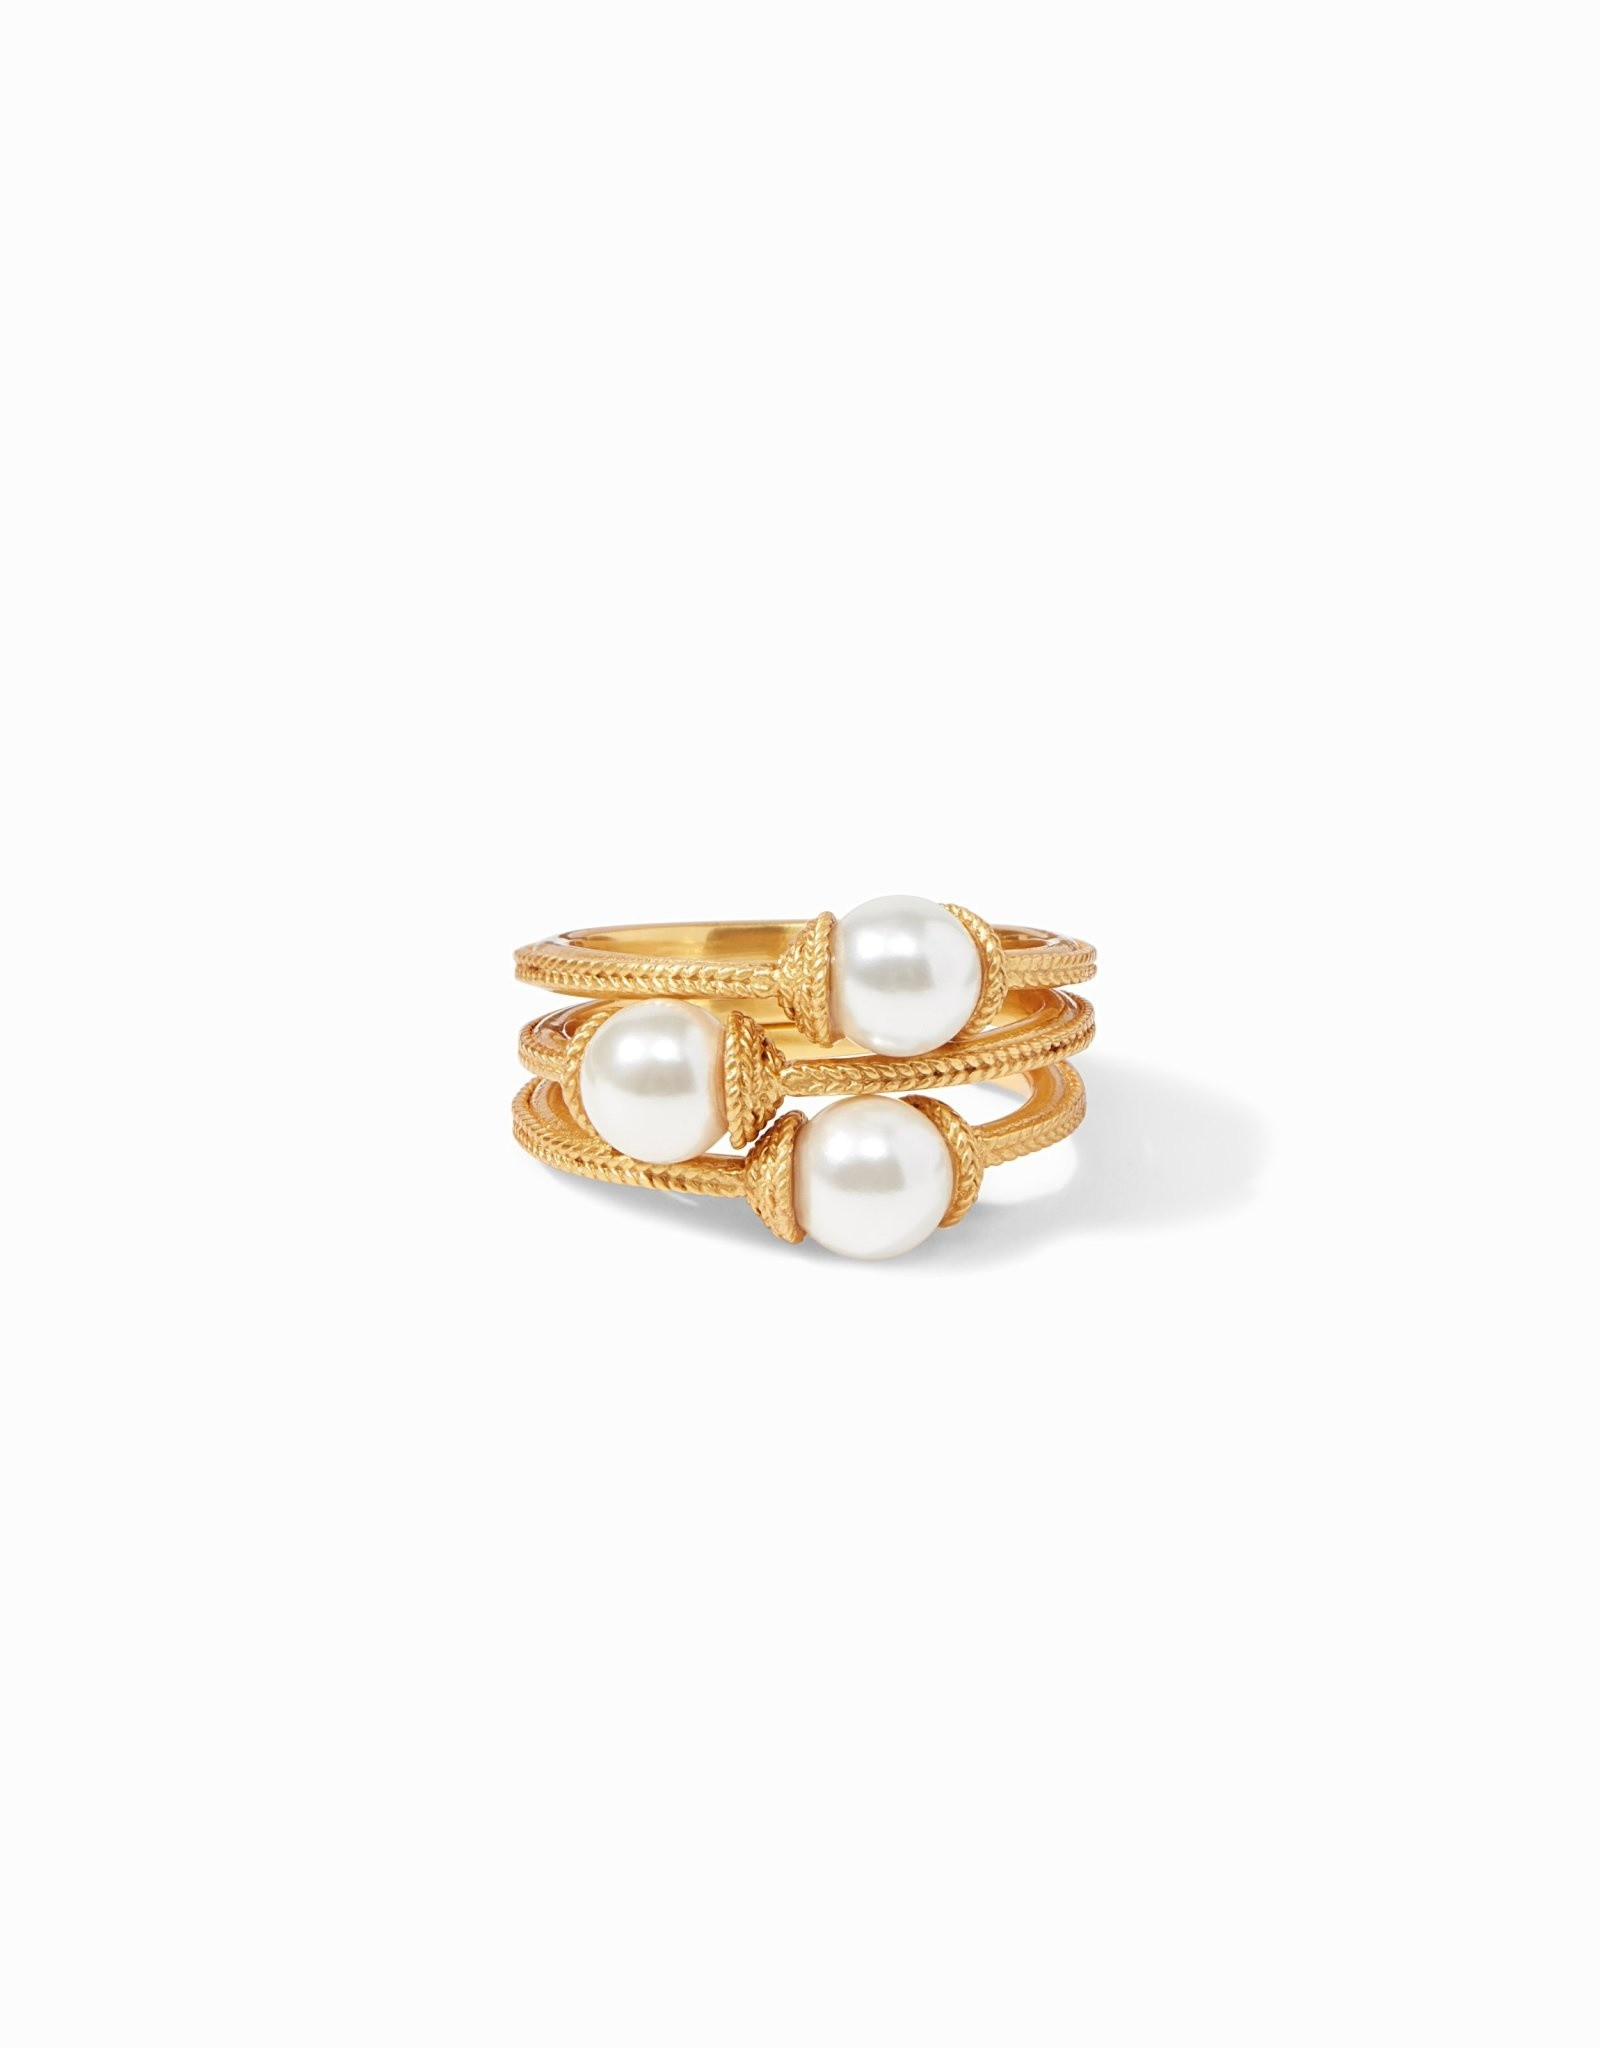 Julie Vos Calpyso Pearl Stacking Ring - 8